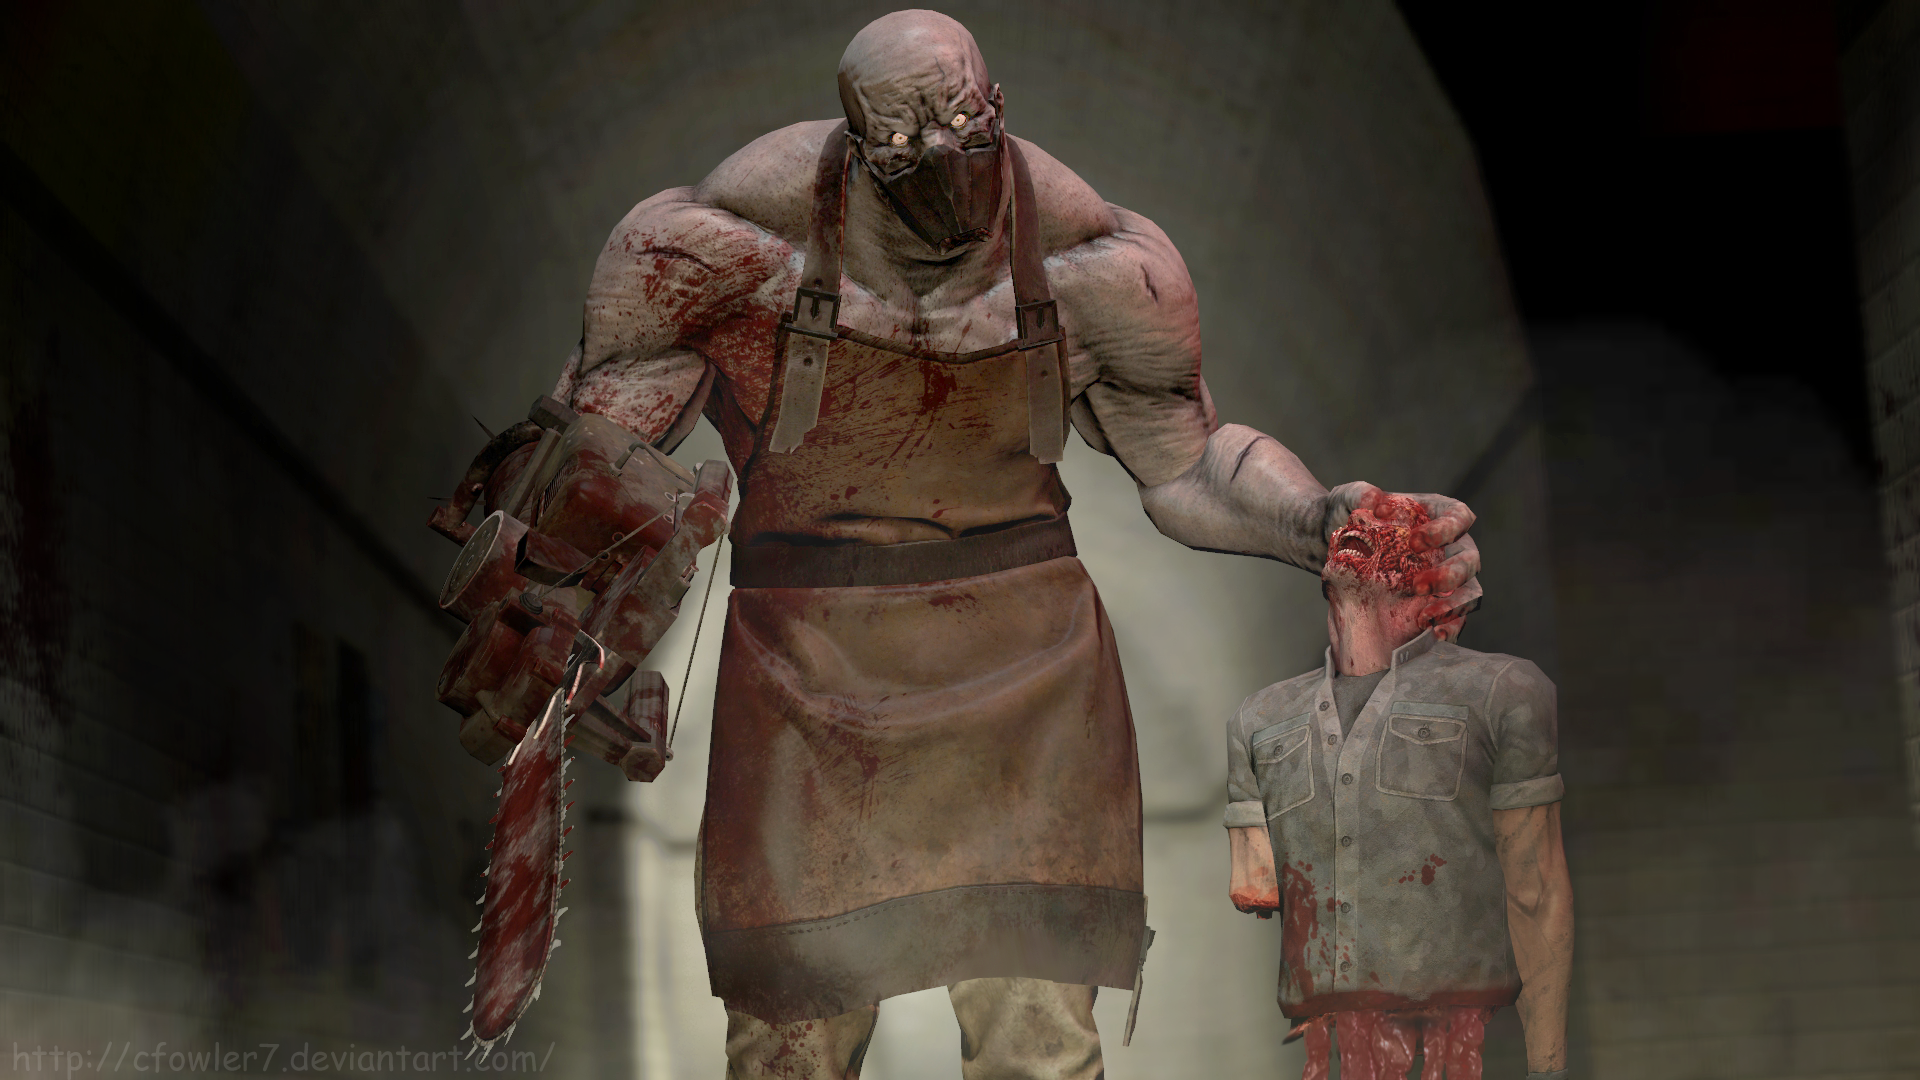 Killing Floor   Scrake By Cfowler7